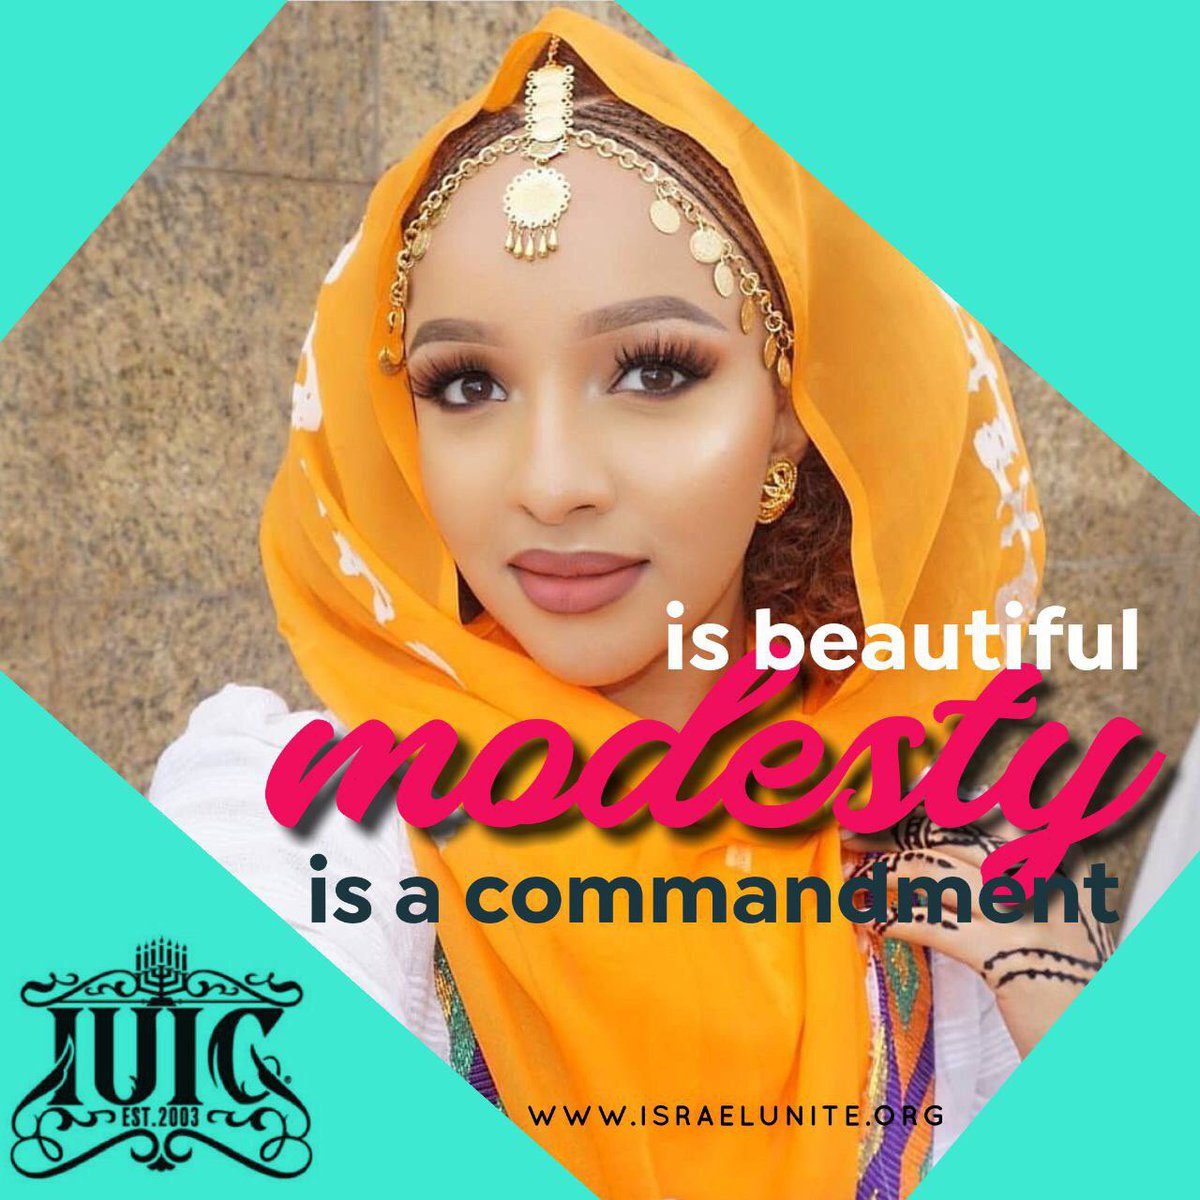 Let your modesty shine!!!   1 Timothy 2:9 [9]In like manner also, that women adorn themselves in modest apparel, with shamefacedness and sobriety; not with broided hair, or gold, or pearls, or costly array;  #Beautiful #Modesty #ModestApparel #Shamefaced #KeeptheCommandmentspic.twitter.com/4BIEkT53uT